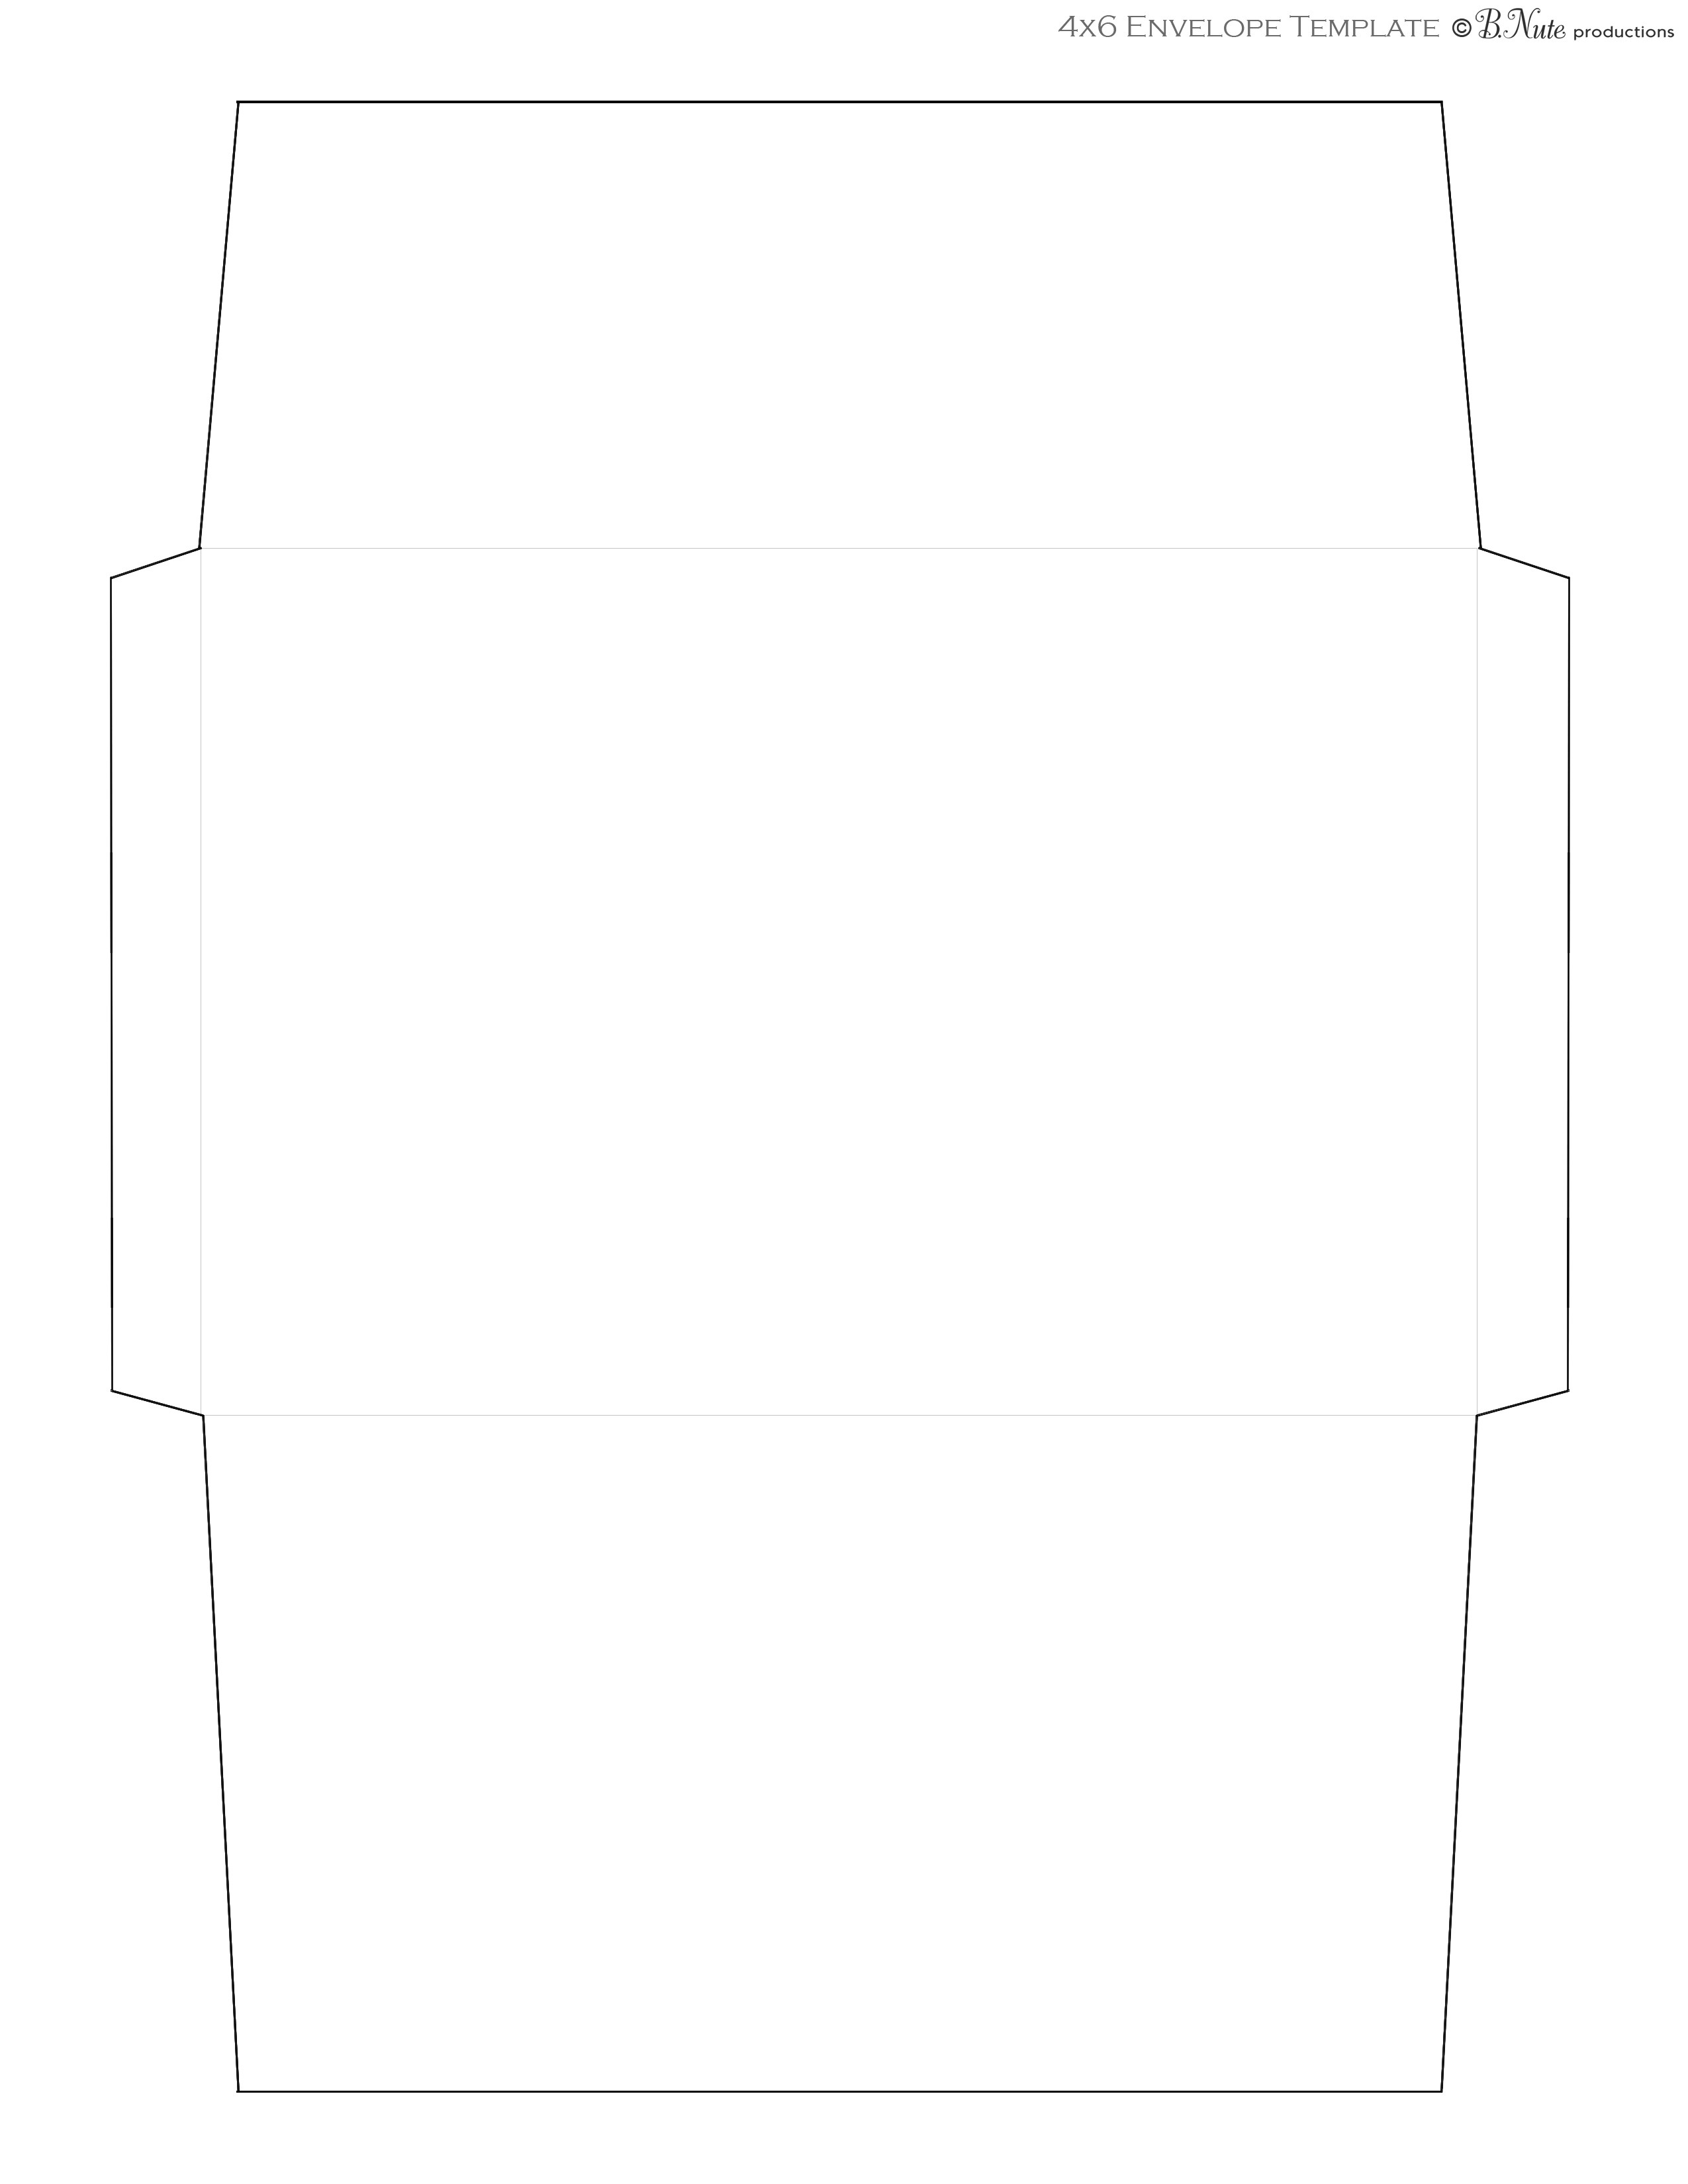 Free Templates for Envelopes to Print Bnute Productions Scrapbook Paper Ideas Printed Envelope